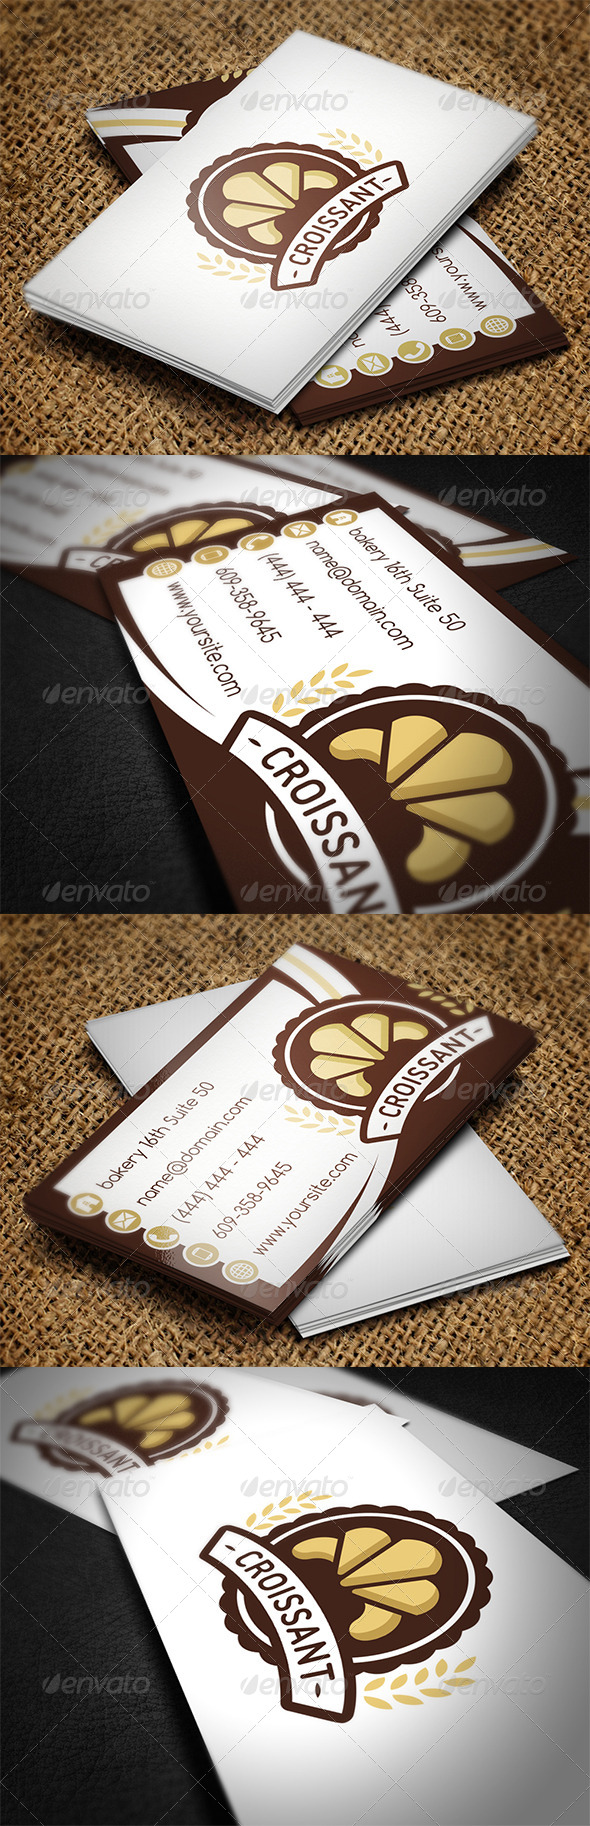 Bakery Business Card - Industry Specific Business Cards